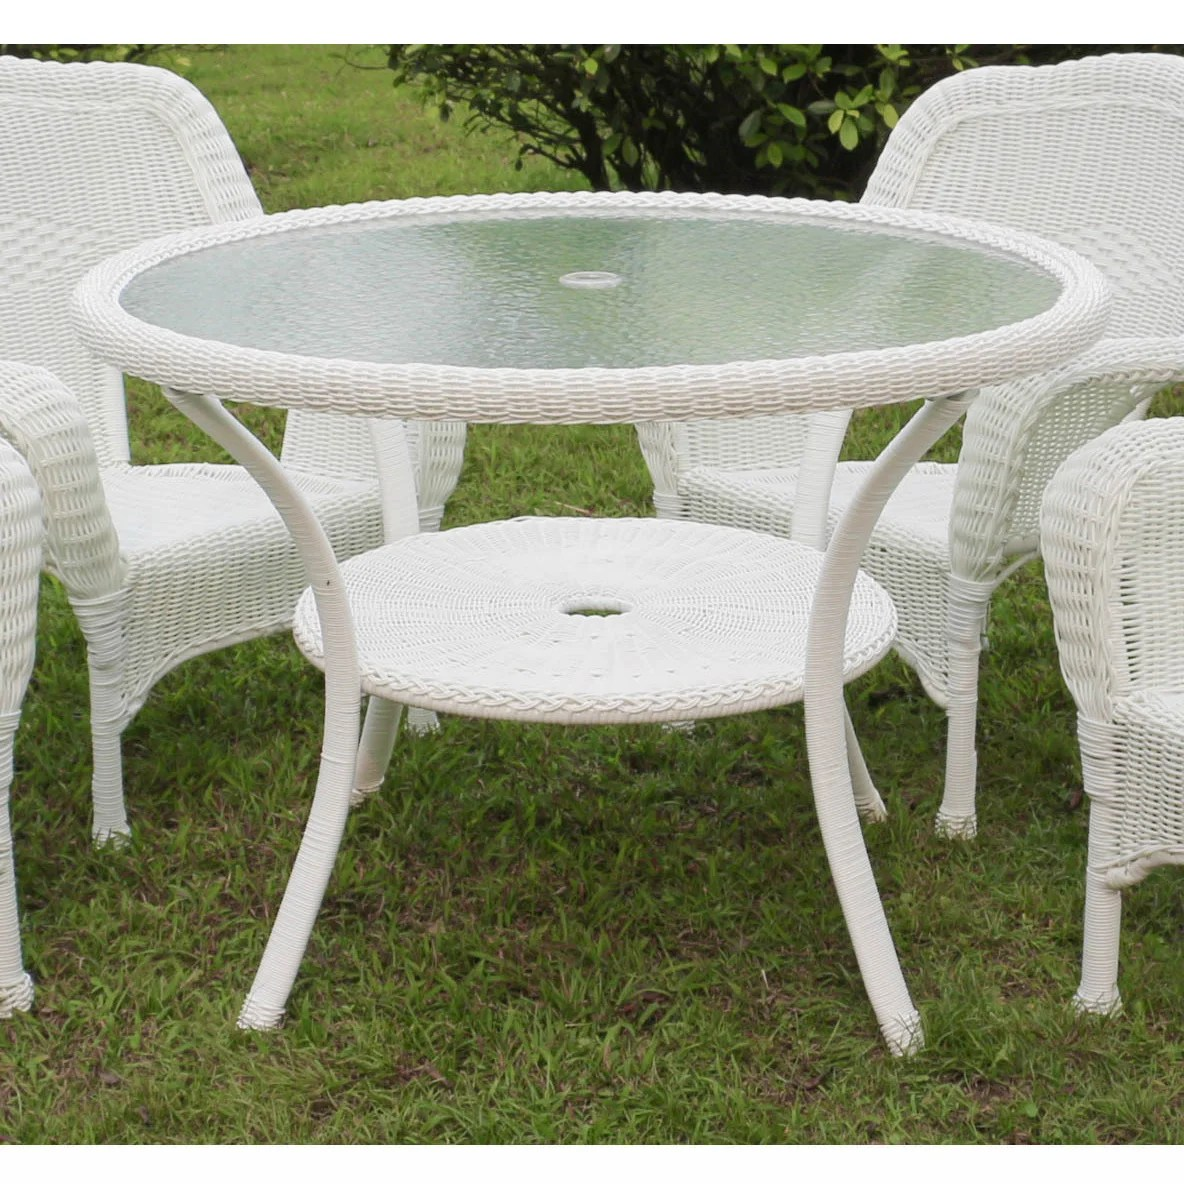 Outdoor Dining Tables Online